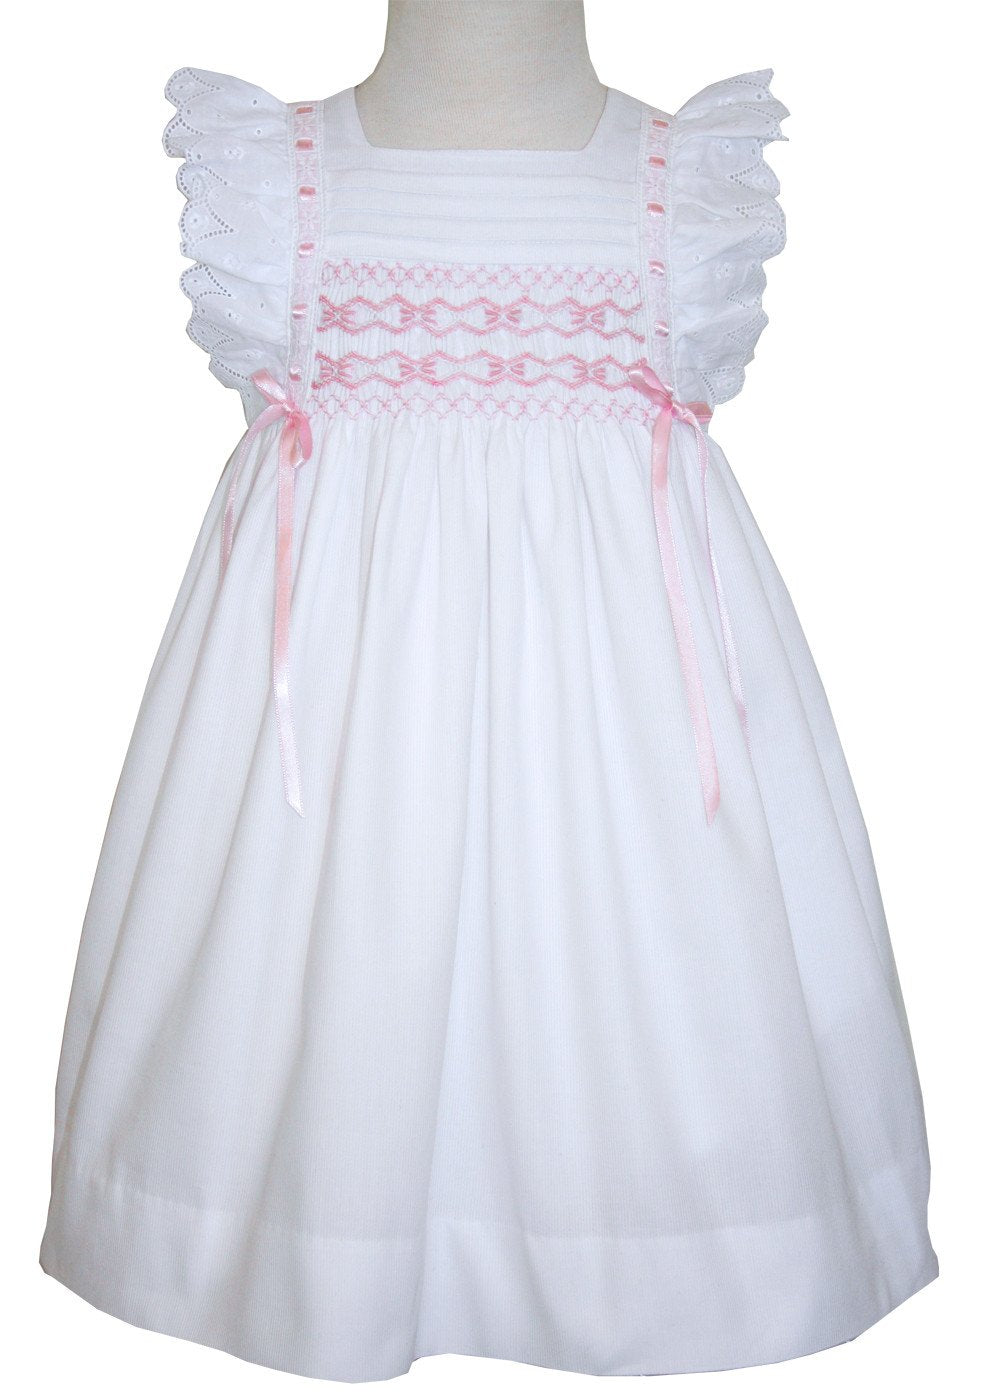 3m The Childrens Hour Baby Girls White Fully Lined Sheer Organza Gown 24m